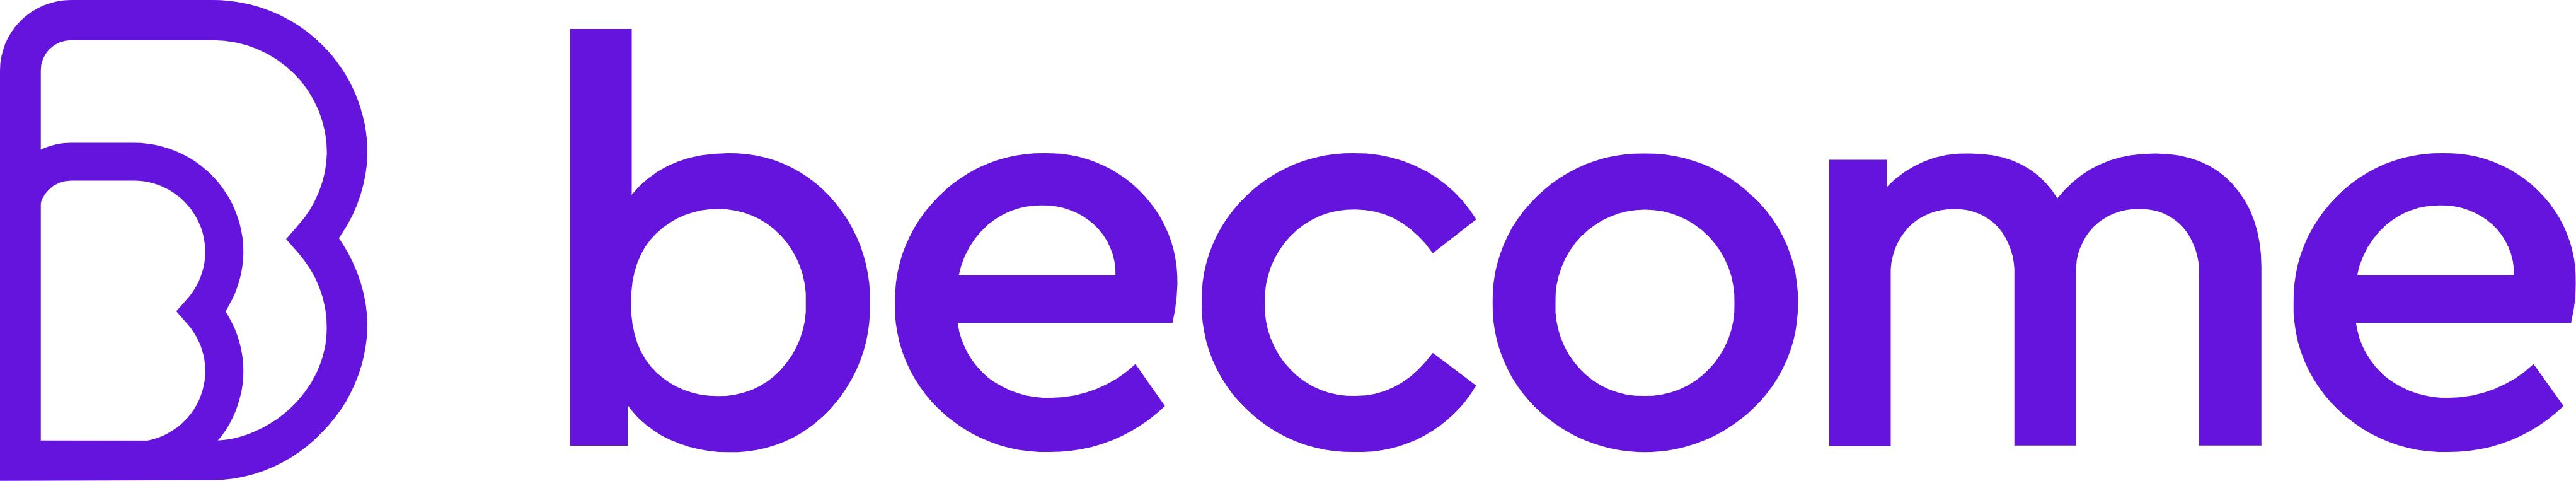 become.co